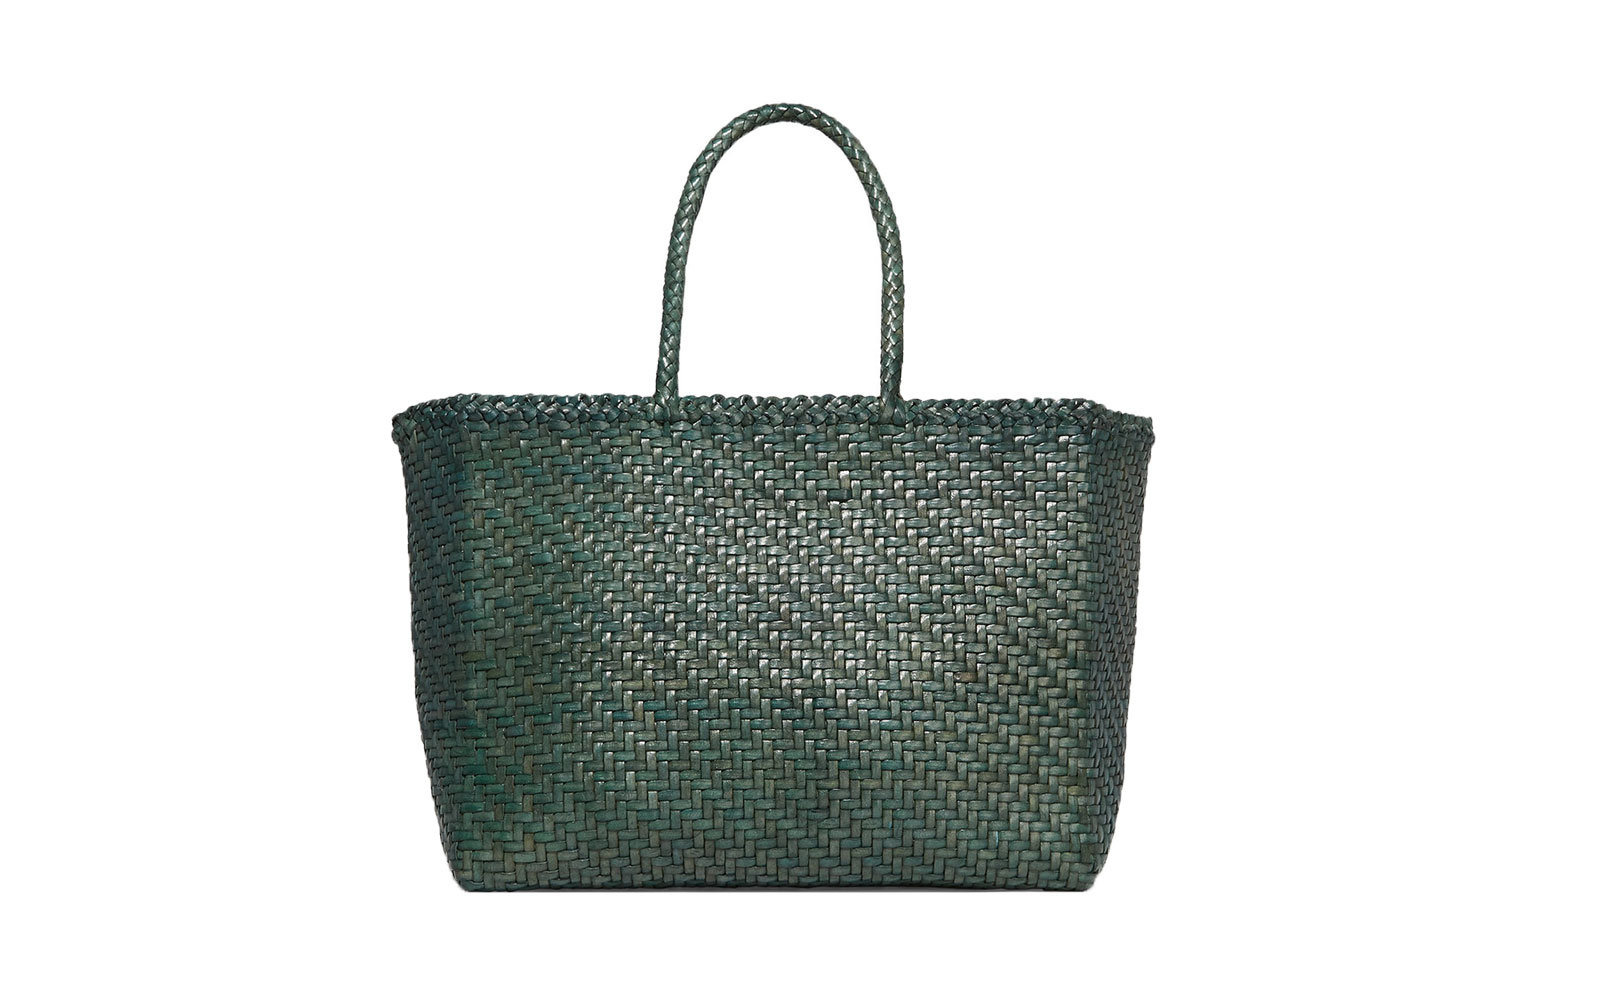 Dragon Diffusion Basket Big Woven Leather Tote in Blue-Green